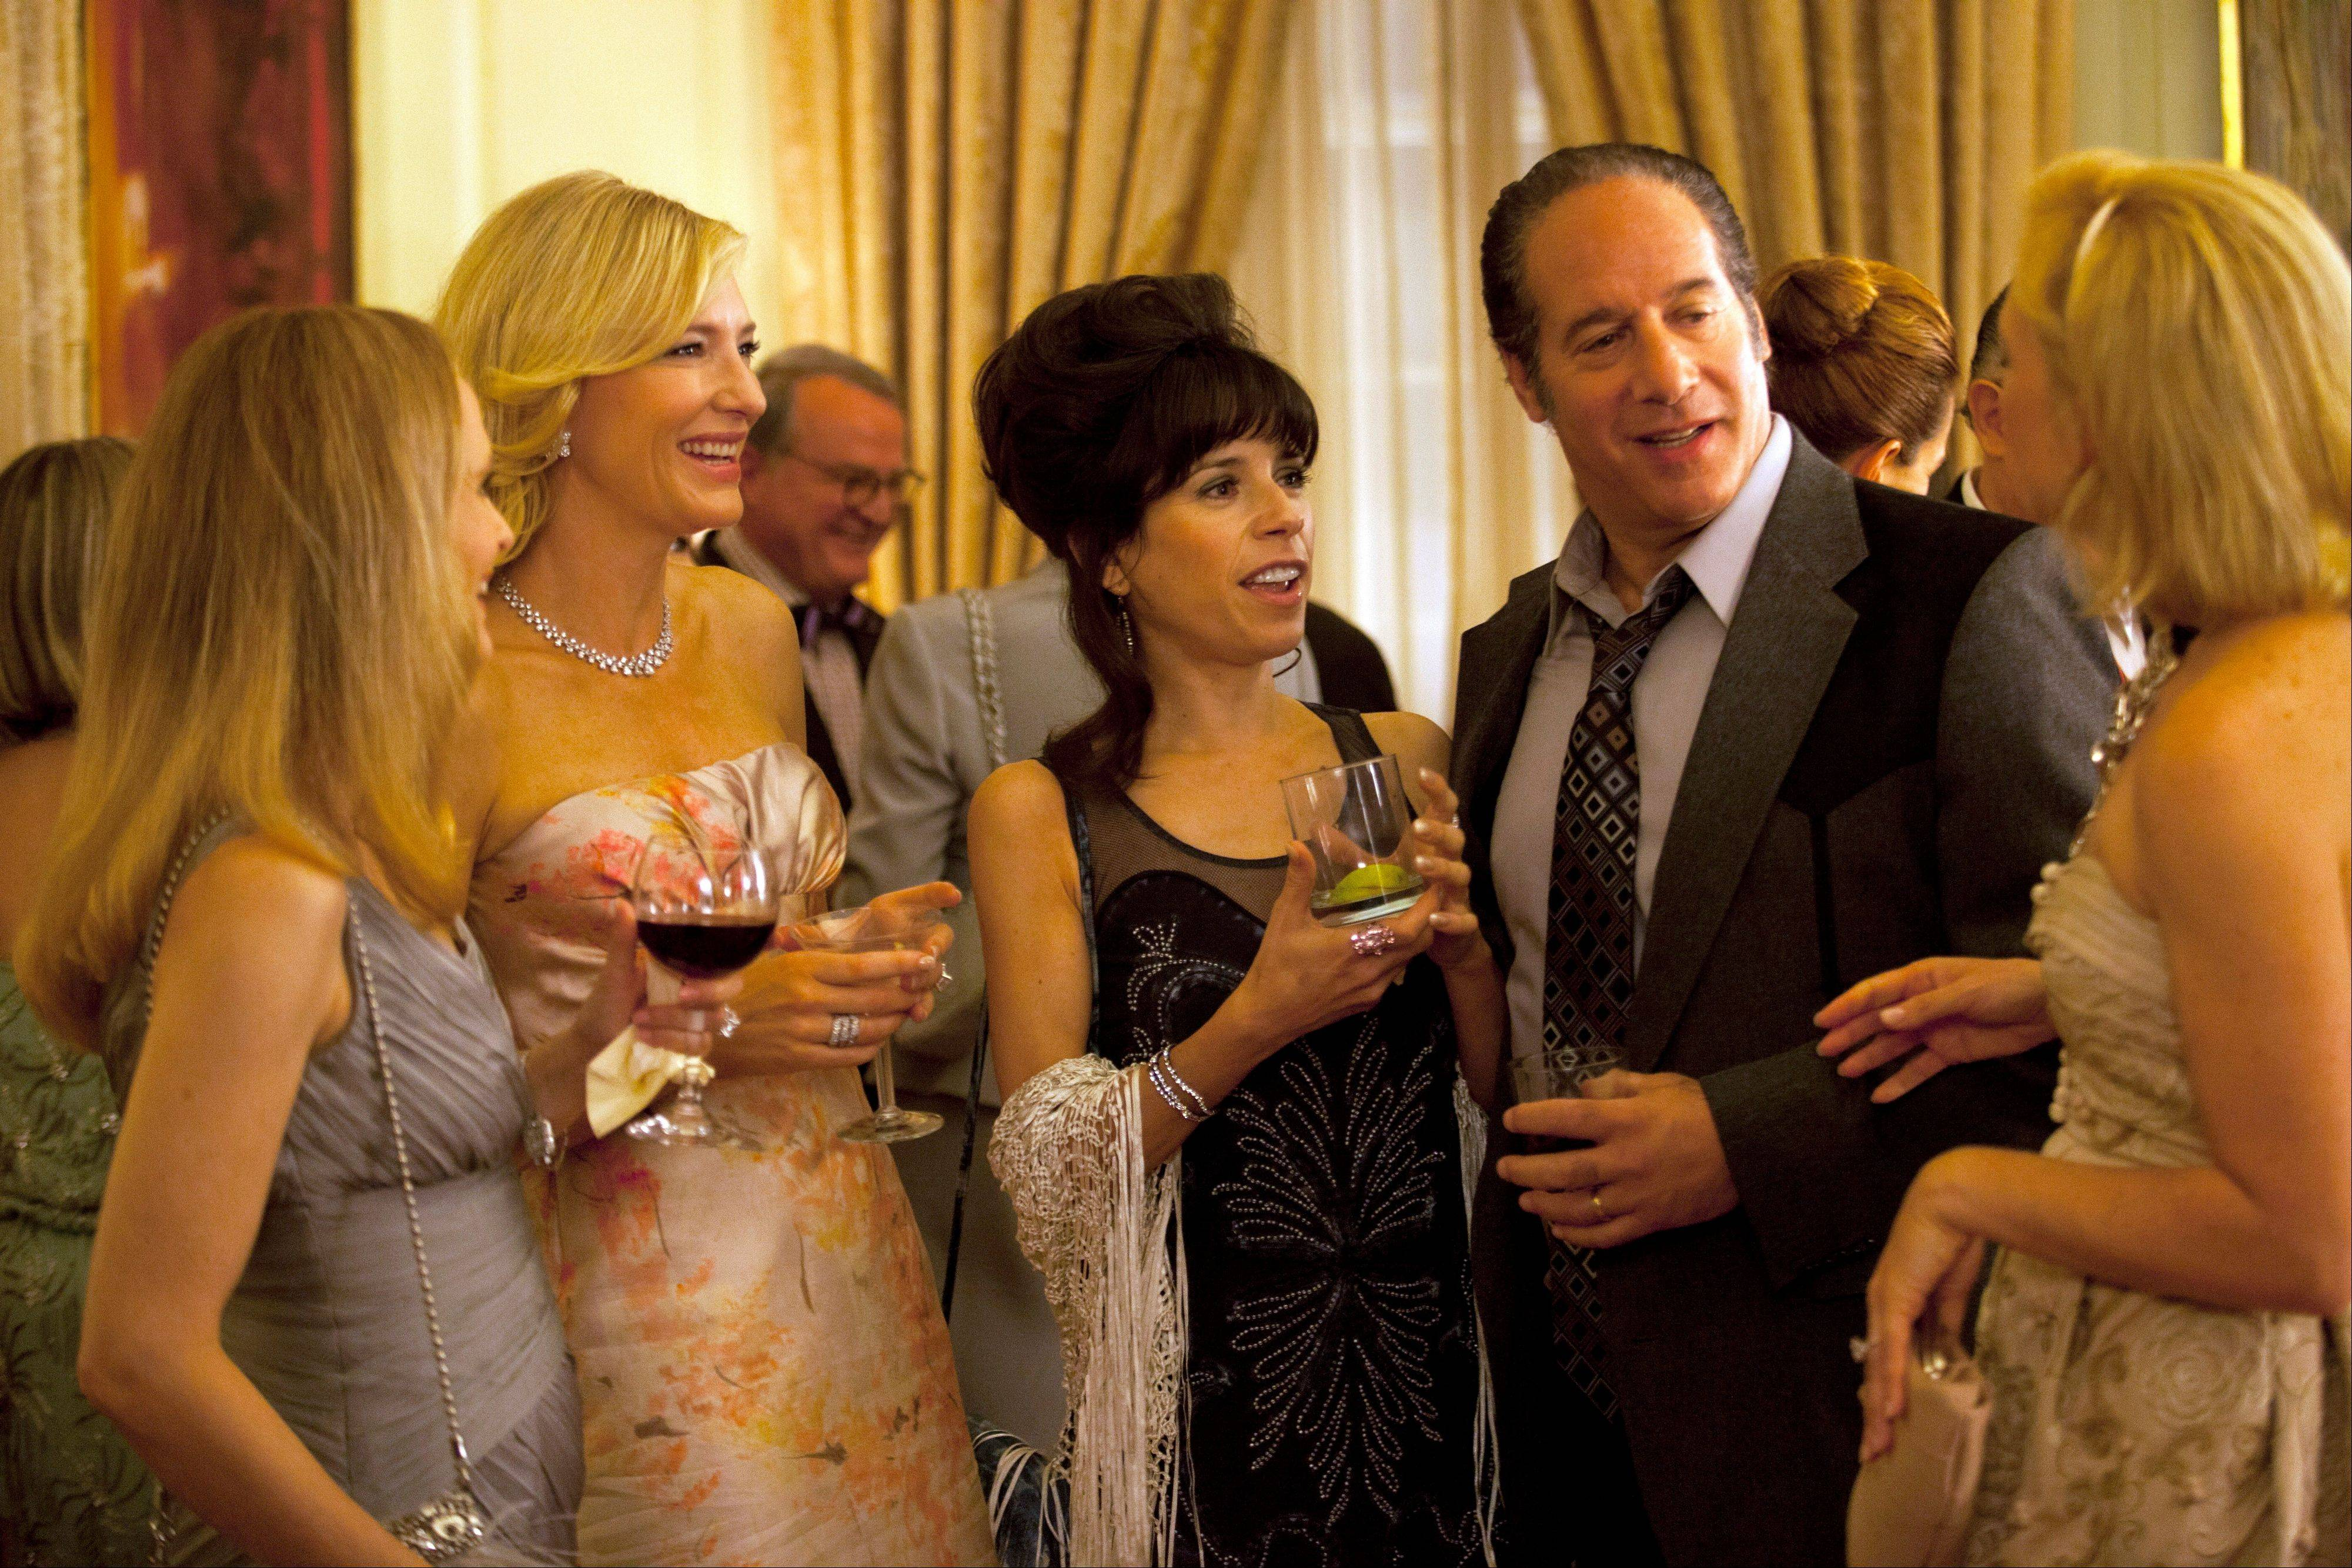 Cate Blanchette, Sally Hawkins and Andrew Dice Clay in a scene from the Woody Allen film, �Blue Jasmine.� �Blue Jasmine,� �Nebraska� and �American Hustle� have been nominated for Writers Guild honors, continuing their imprint on Hollywood�s awards season. The three comedies gained nods on Friday for exceptional screen writing.